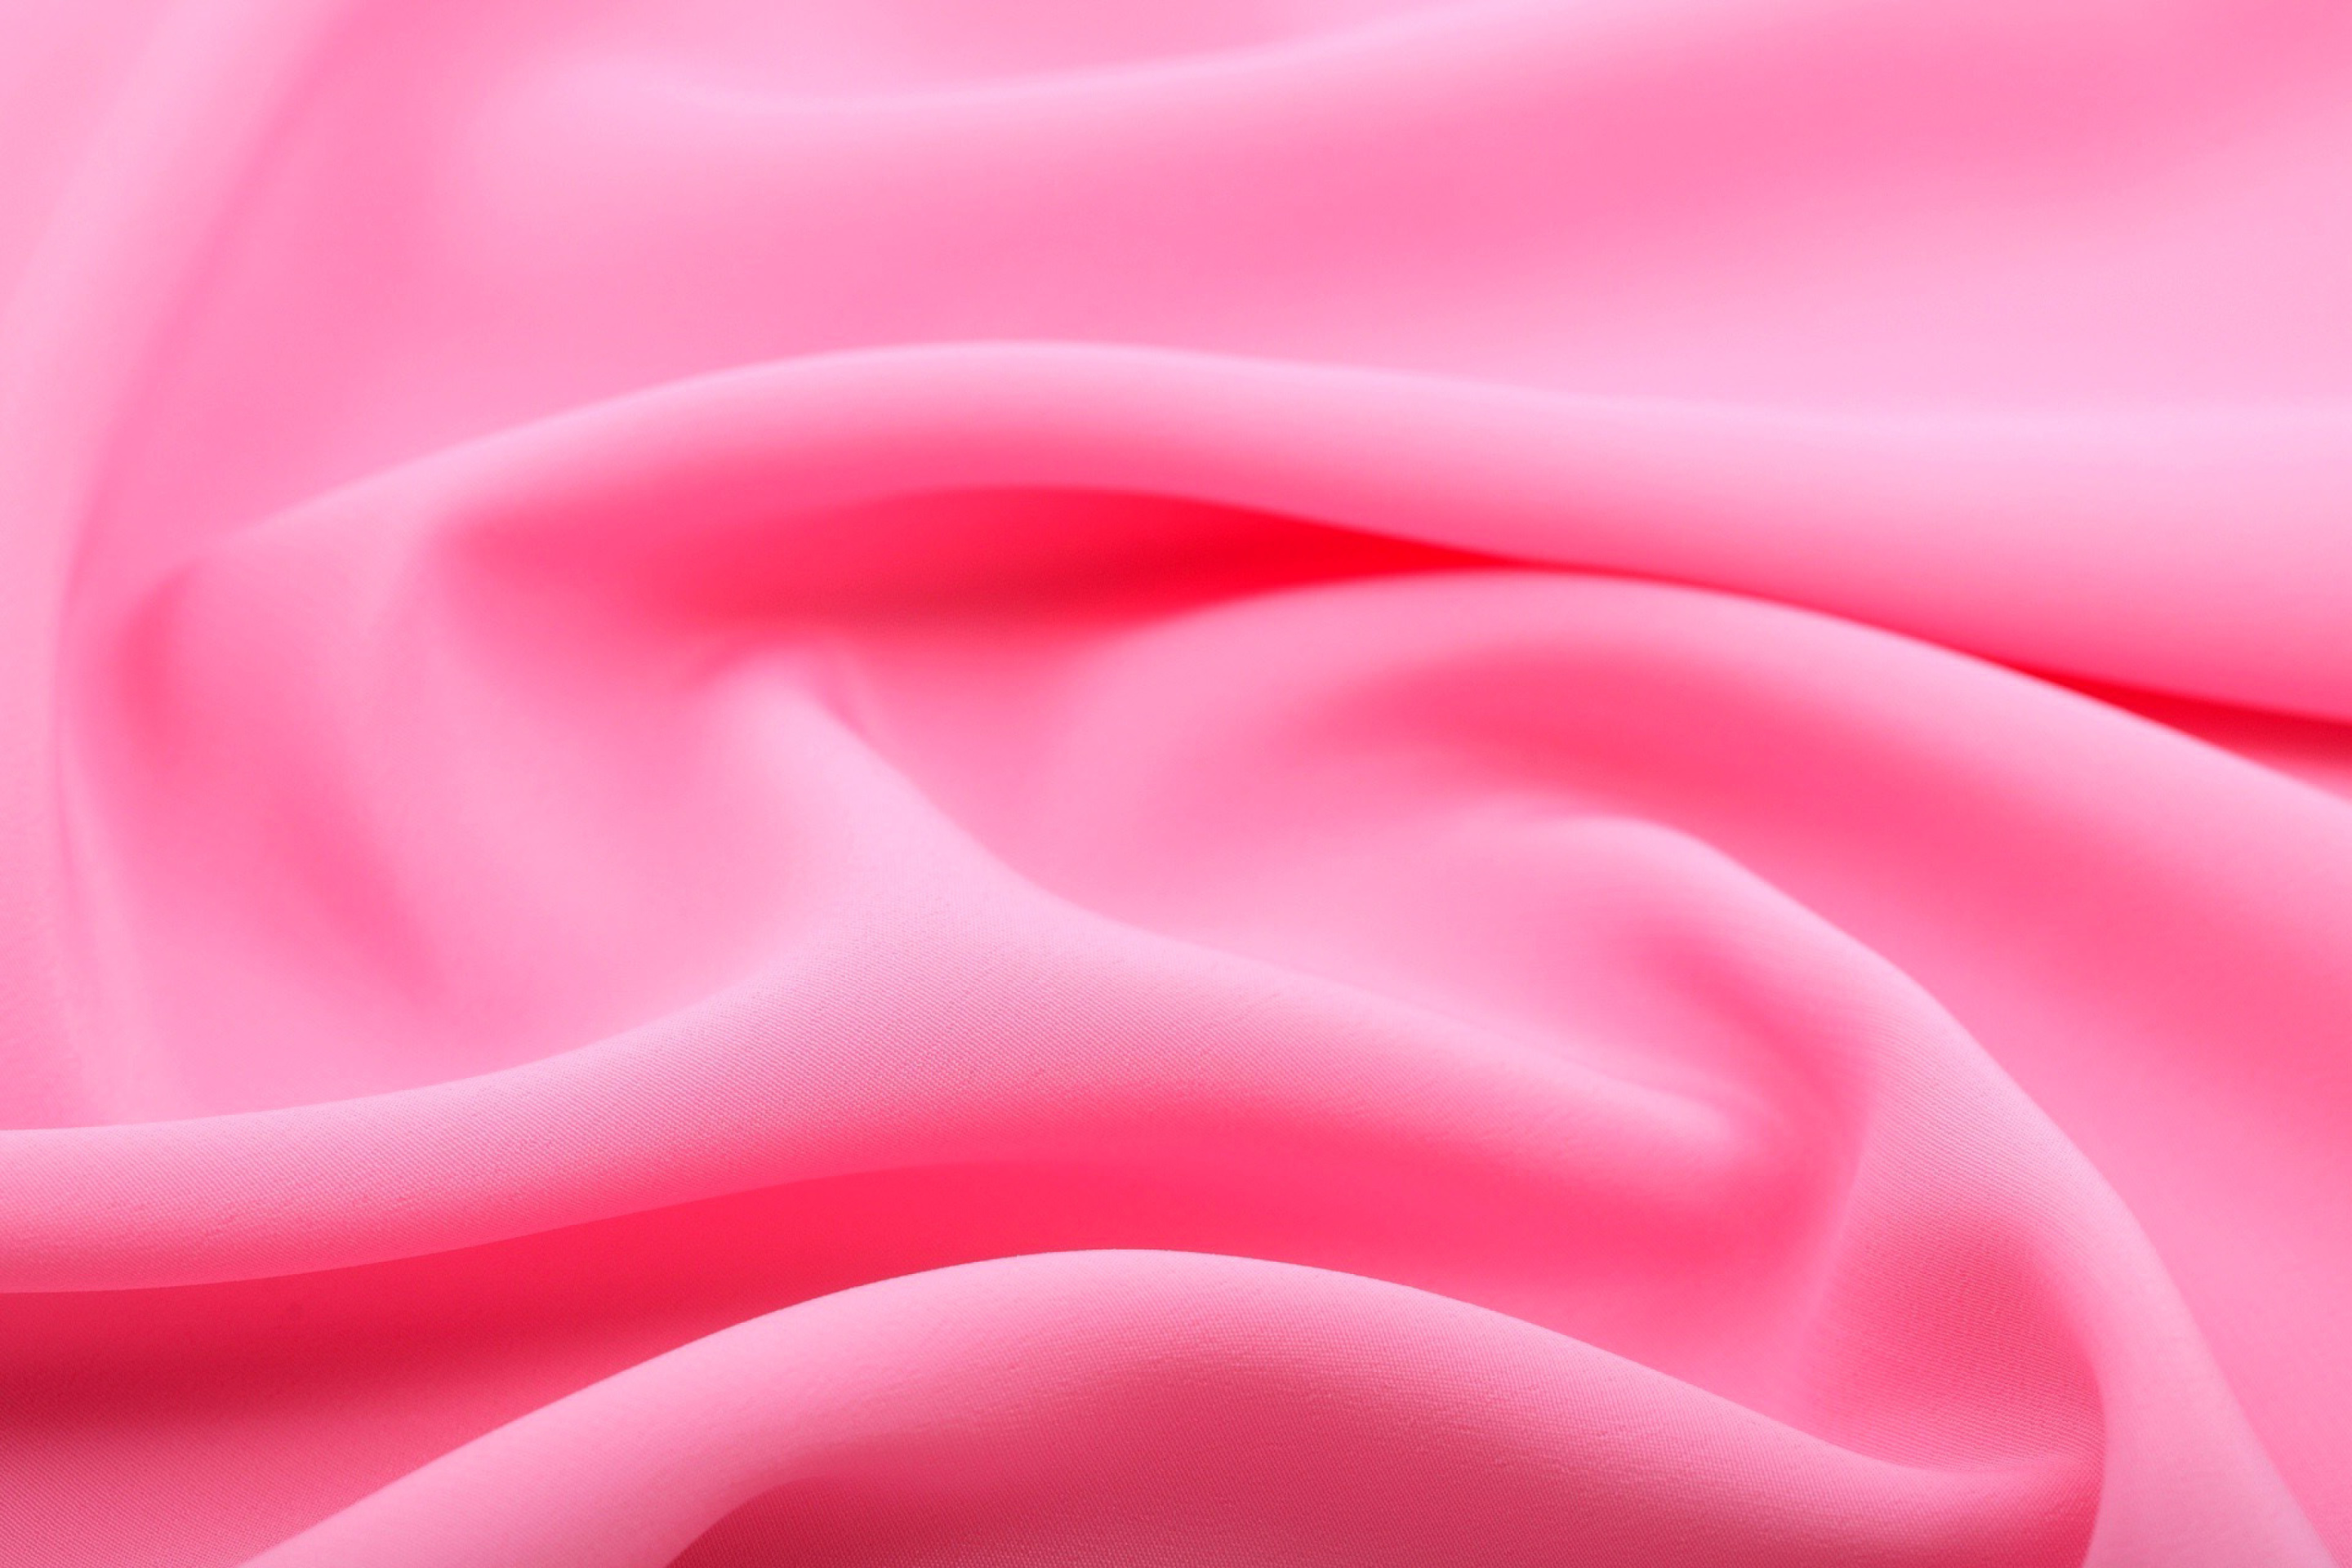 Pink Silk Fabric Wallpaper For 2880x1920